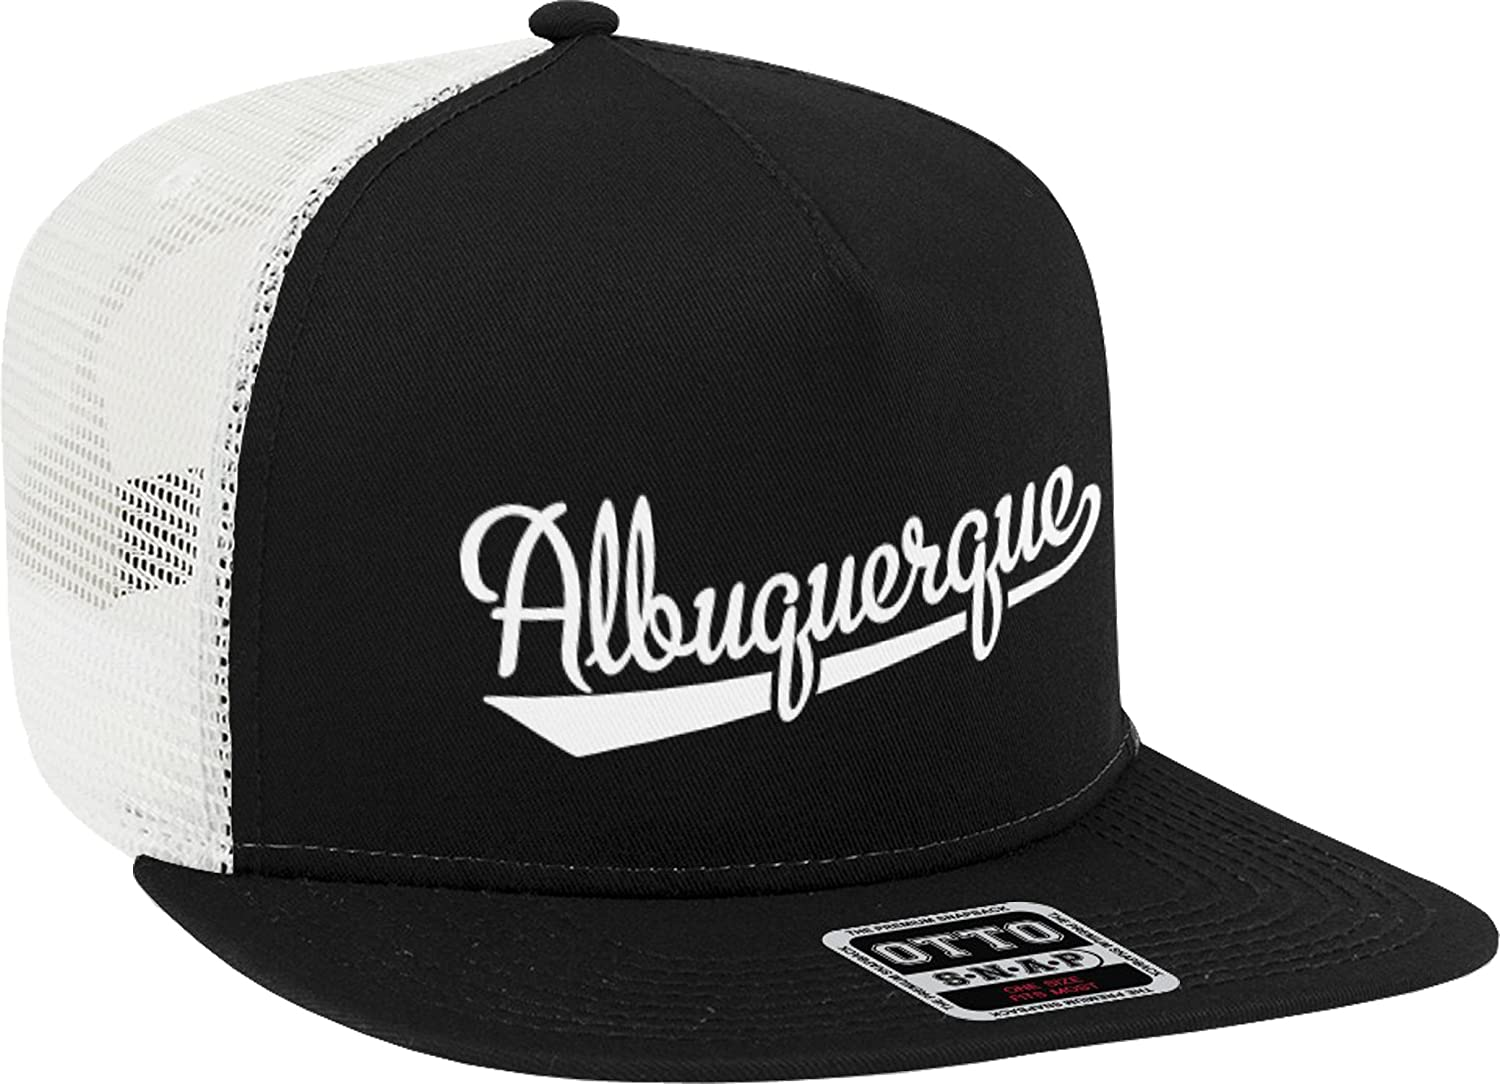 NOFO Clothing Co Albuquerque Limited Special Price Script Truck OFFicial store Baseball Snapback Font